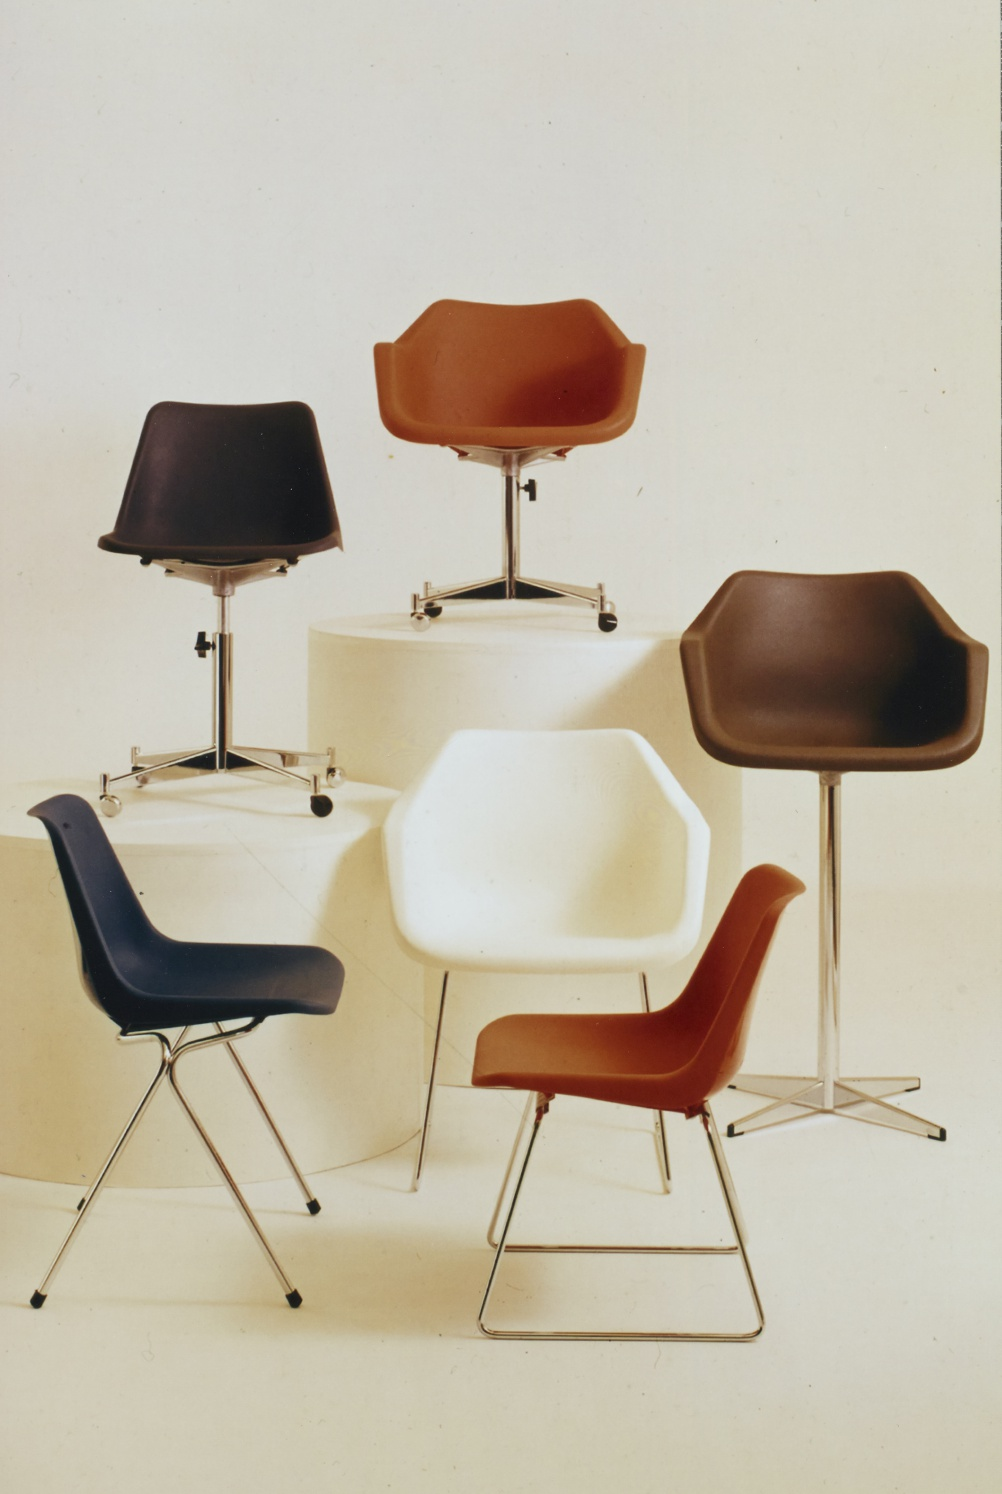 Image courtesy of The Robin and Lucienne Day Foundation